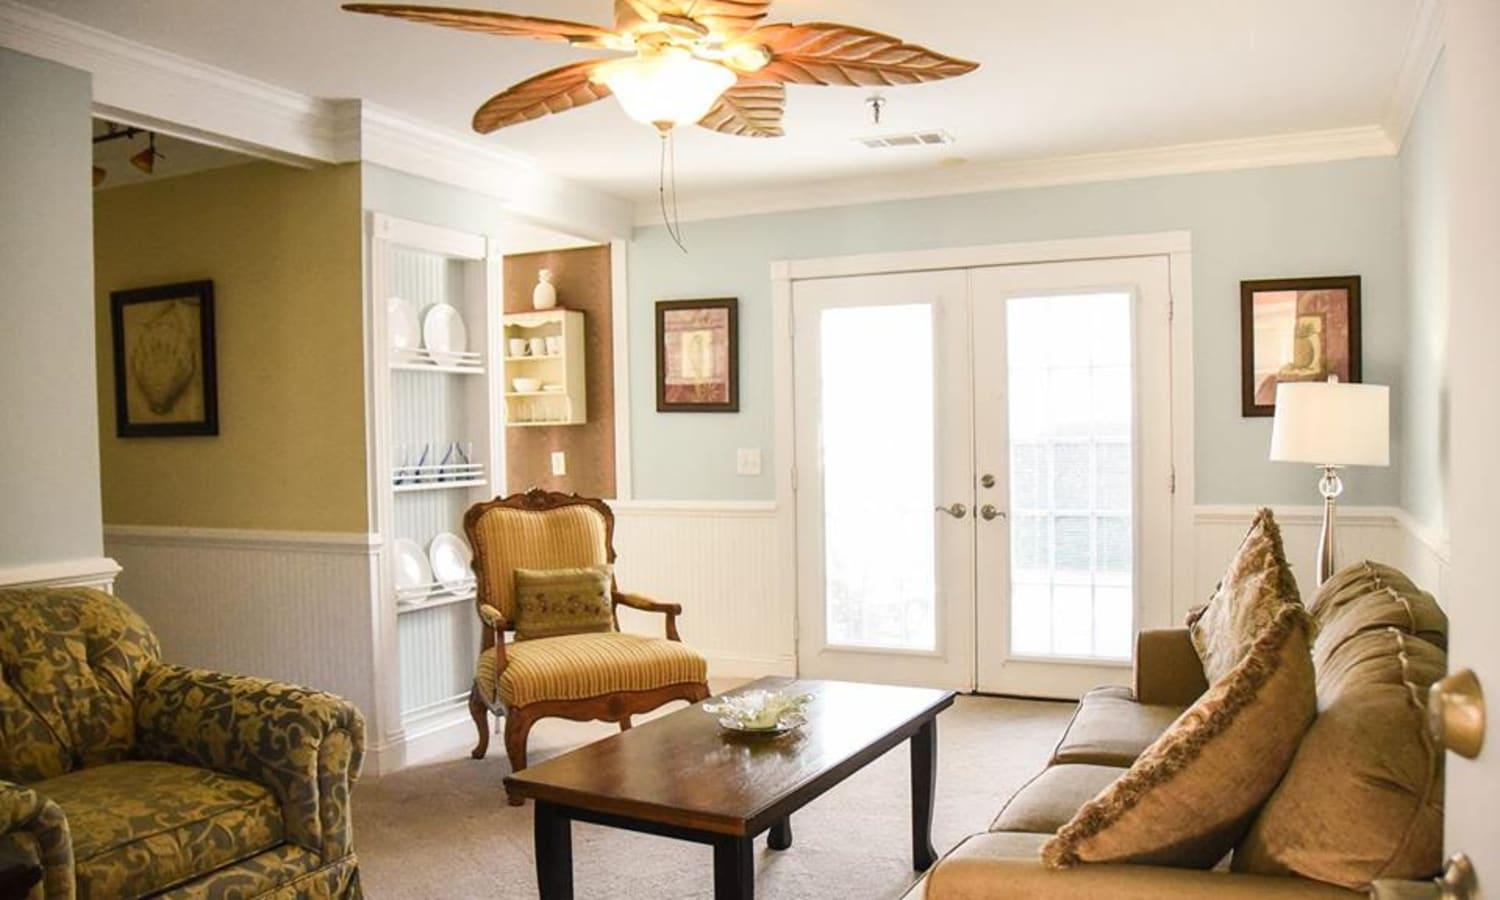 A resident's living room at Sandpiper Senior Living in Mt. Pleasant, South Carolina